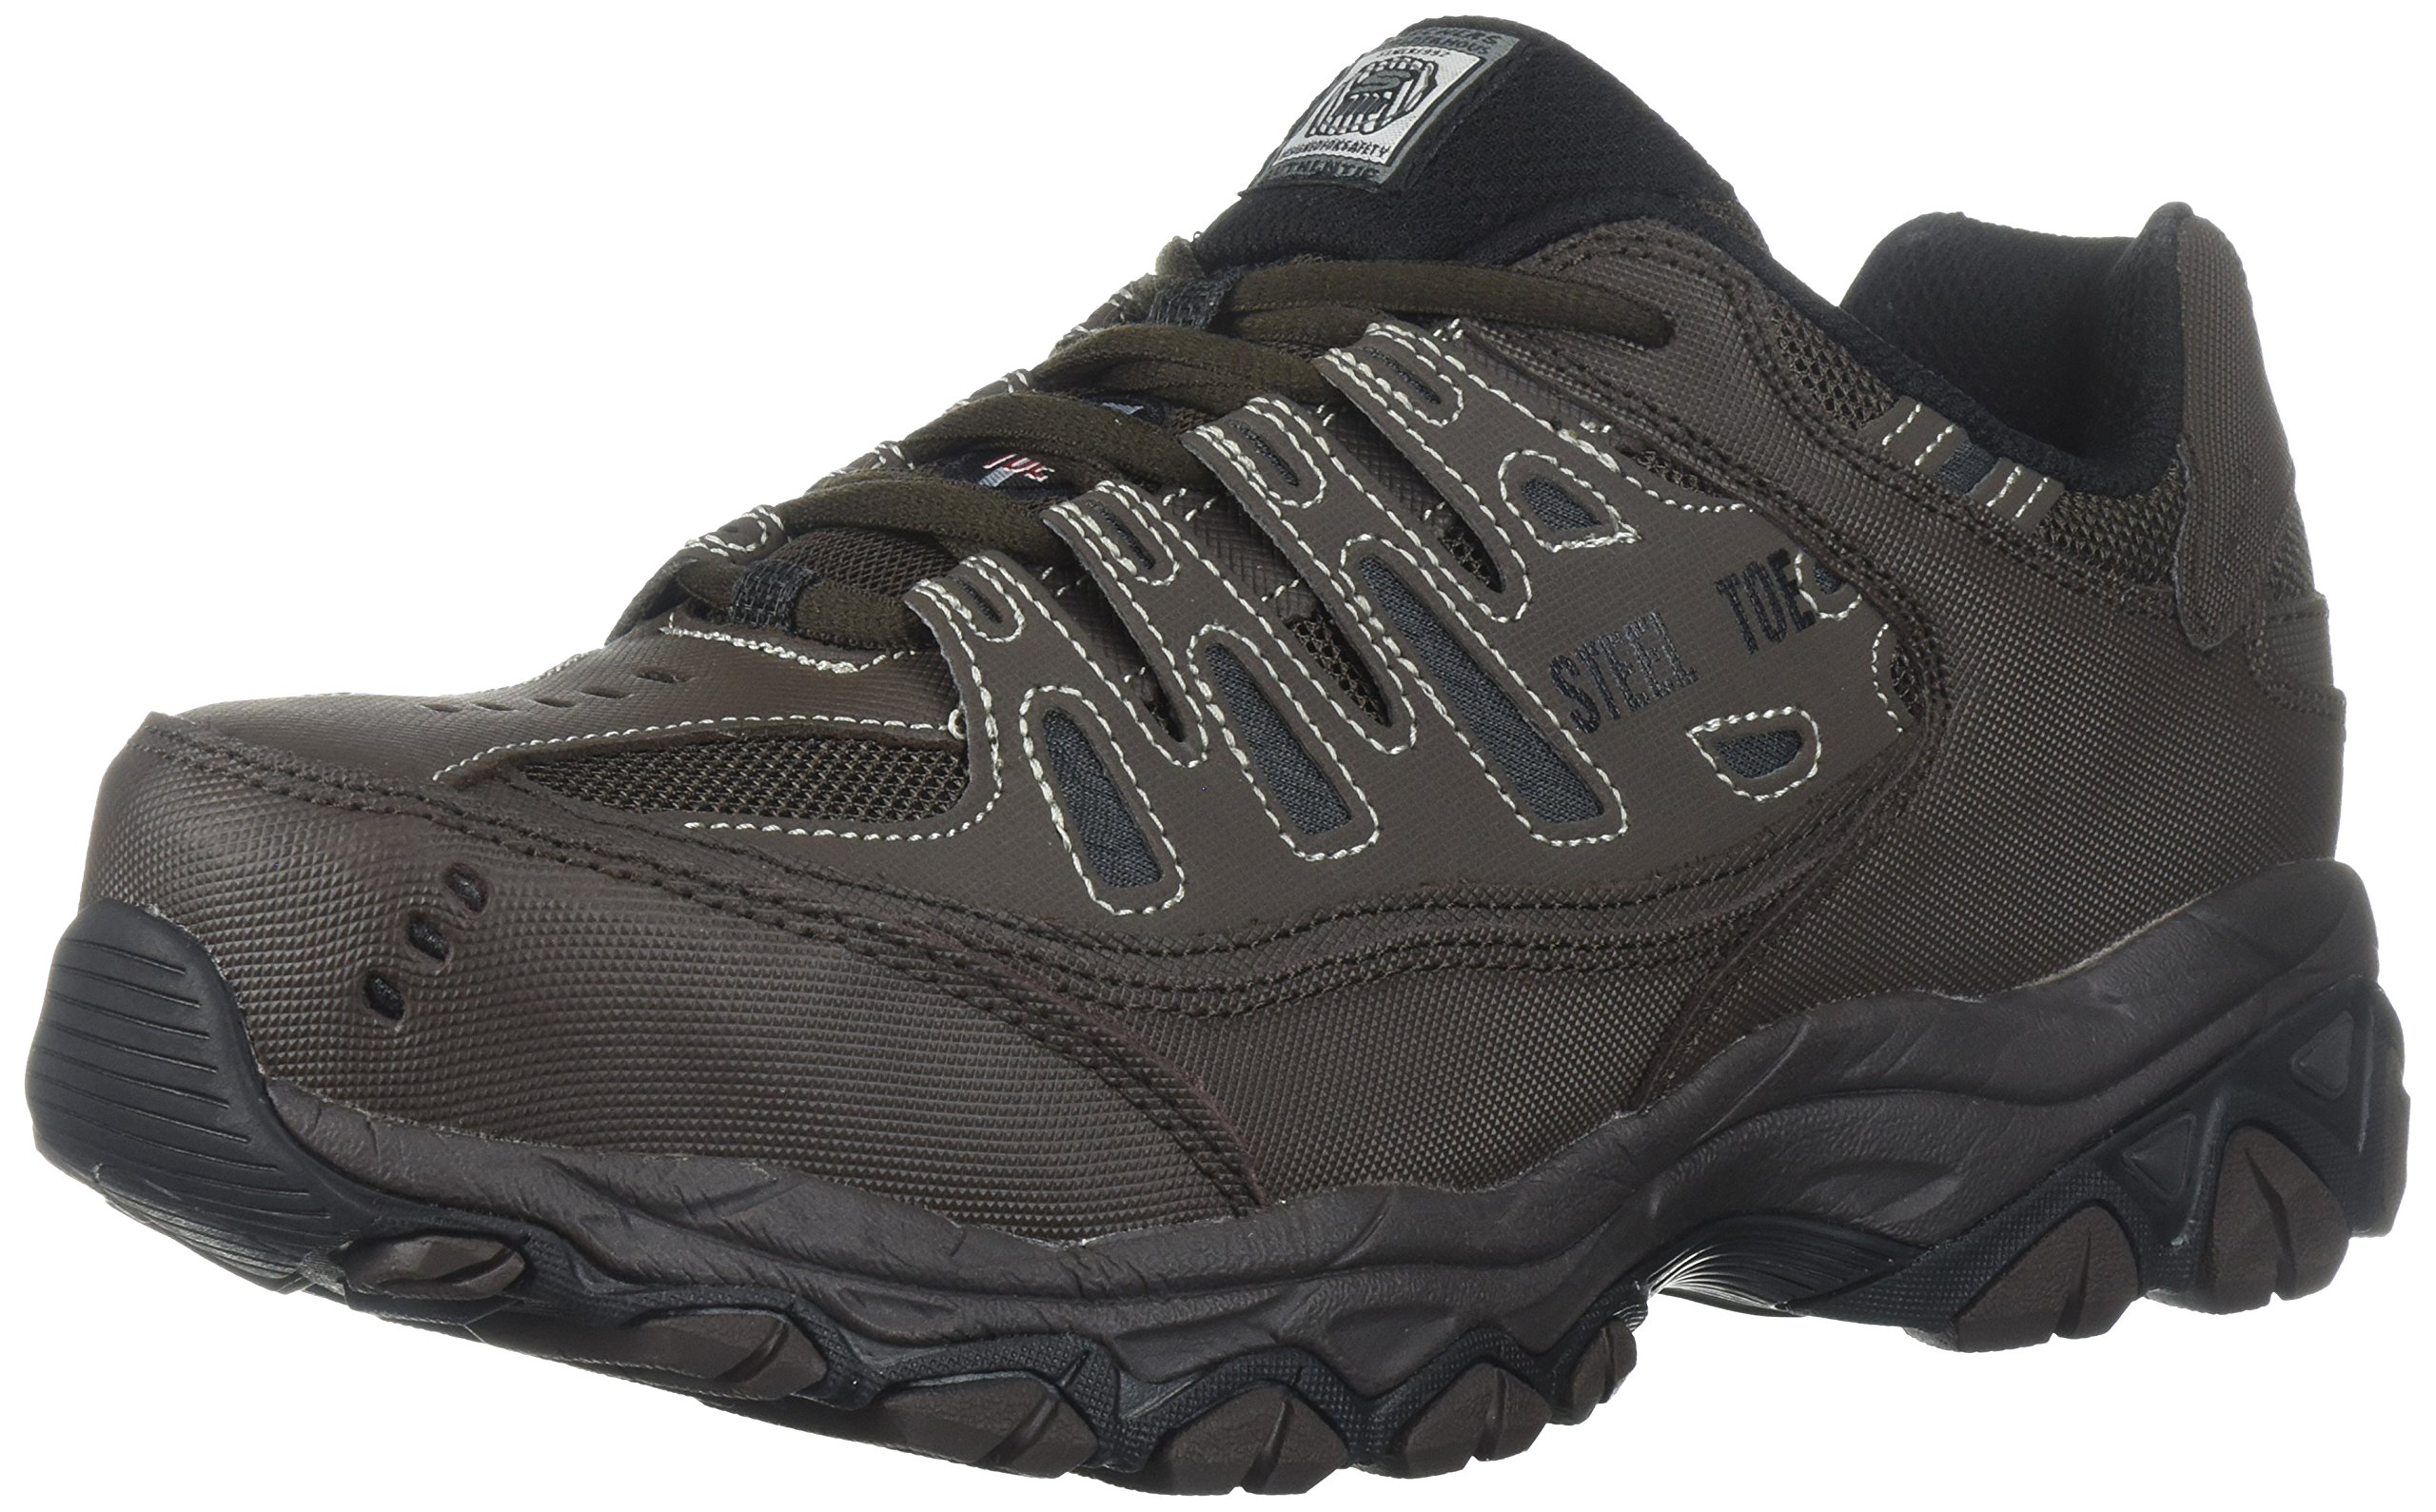 Skechers for Work Men's Cankton-U Industrial Shoe,Brown,9 2E US by Skechers